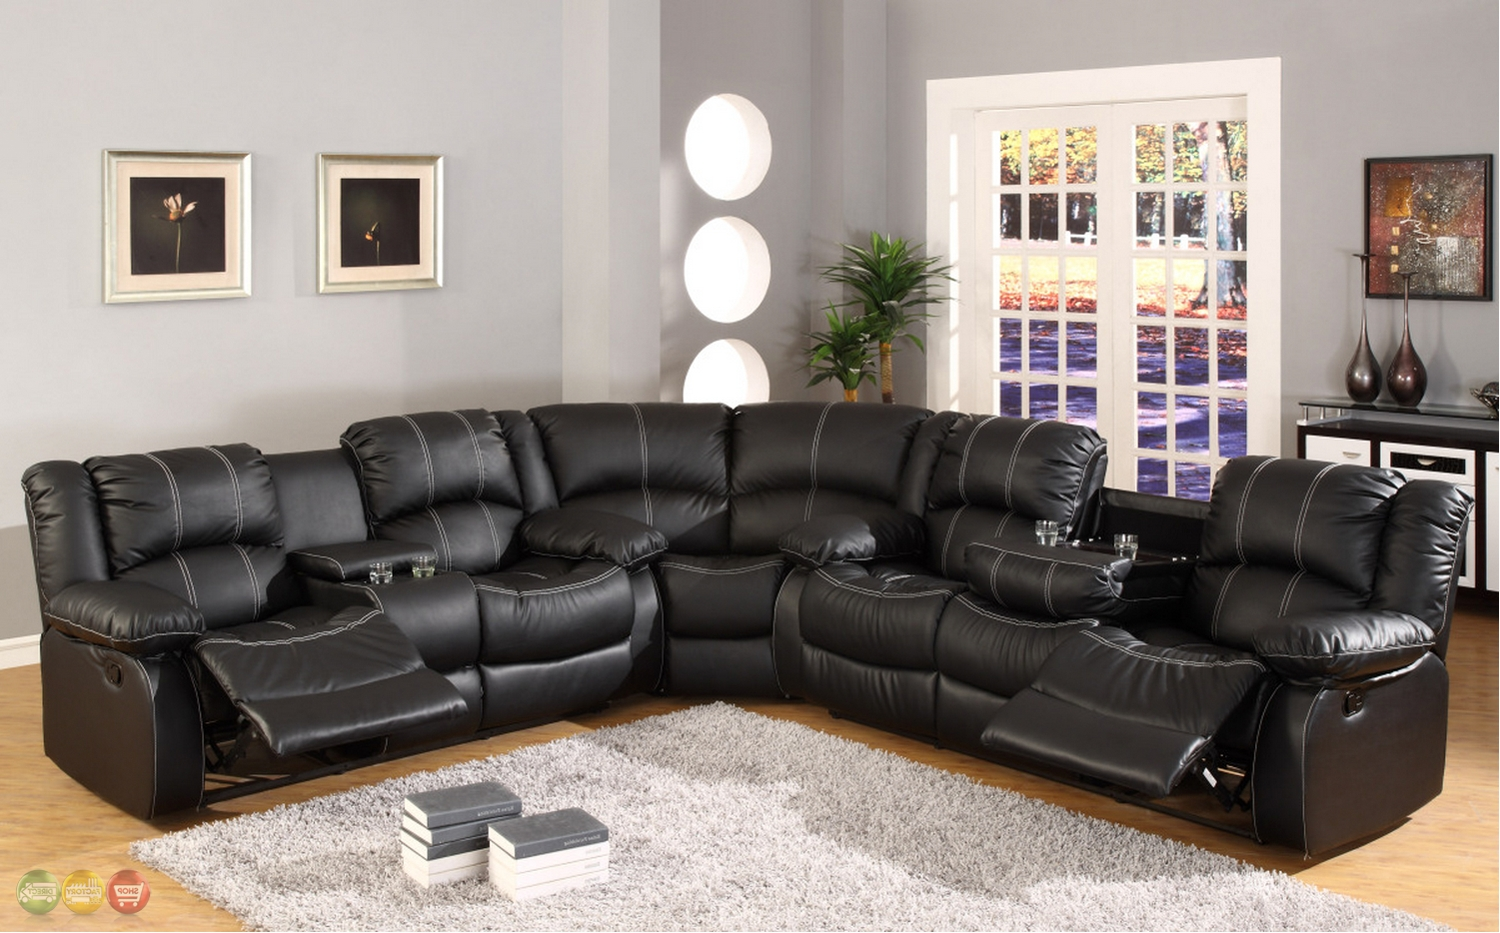 Black Faux Leather Reclining Motion Sectional Sofa W/ Storage With Most Recent Motion Sectional Sofas (View 2 of 15)